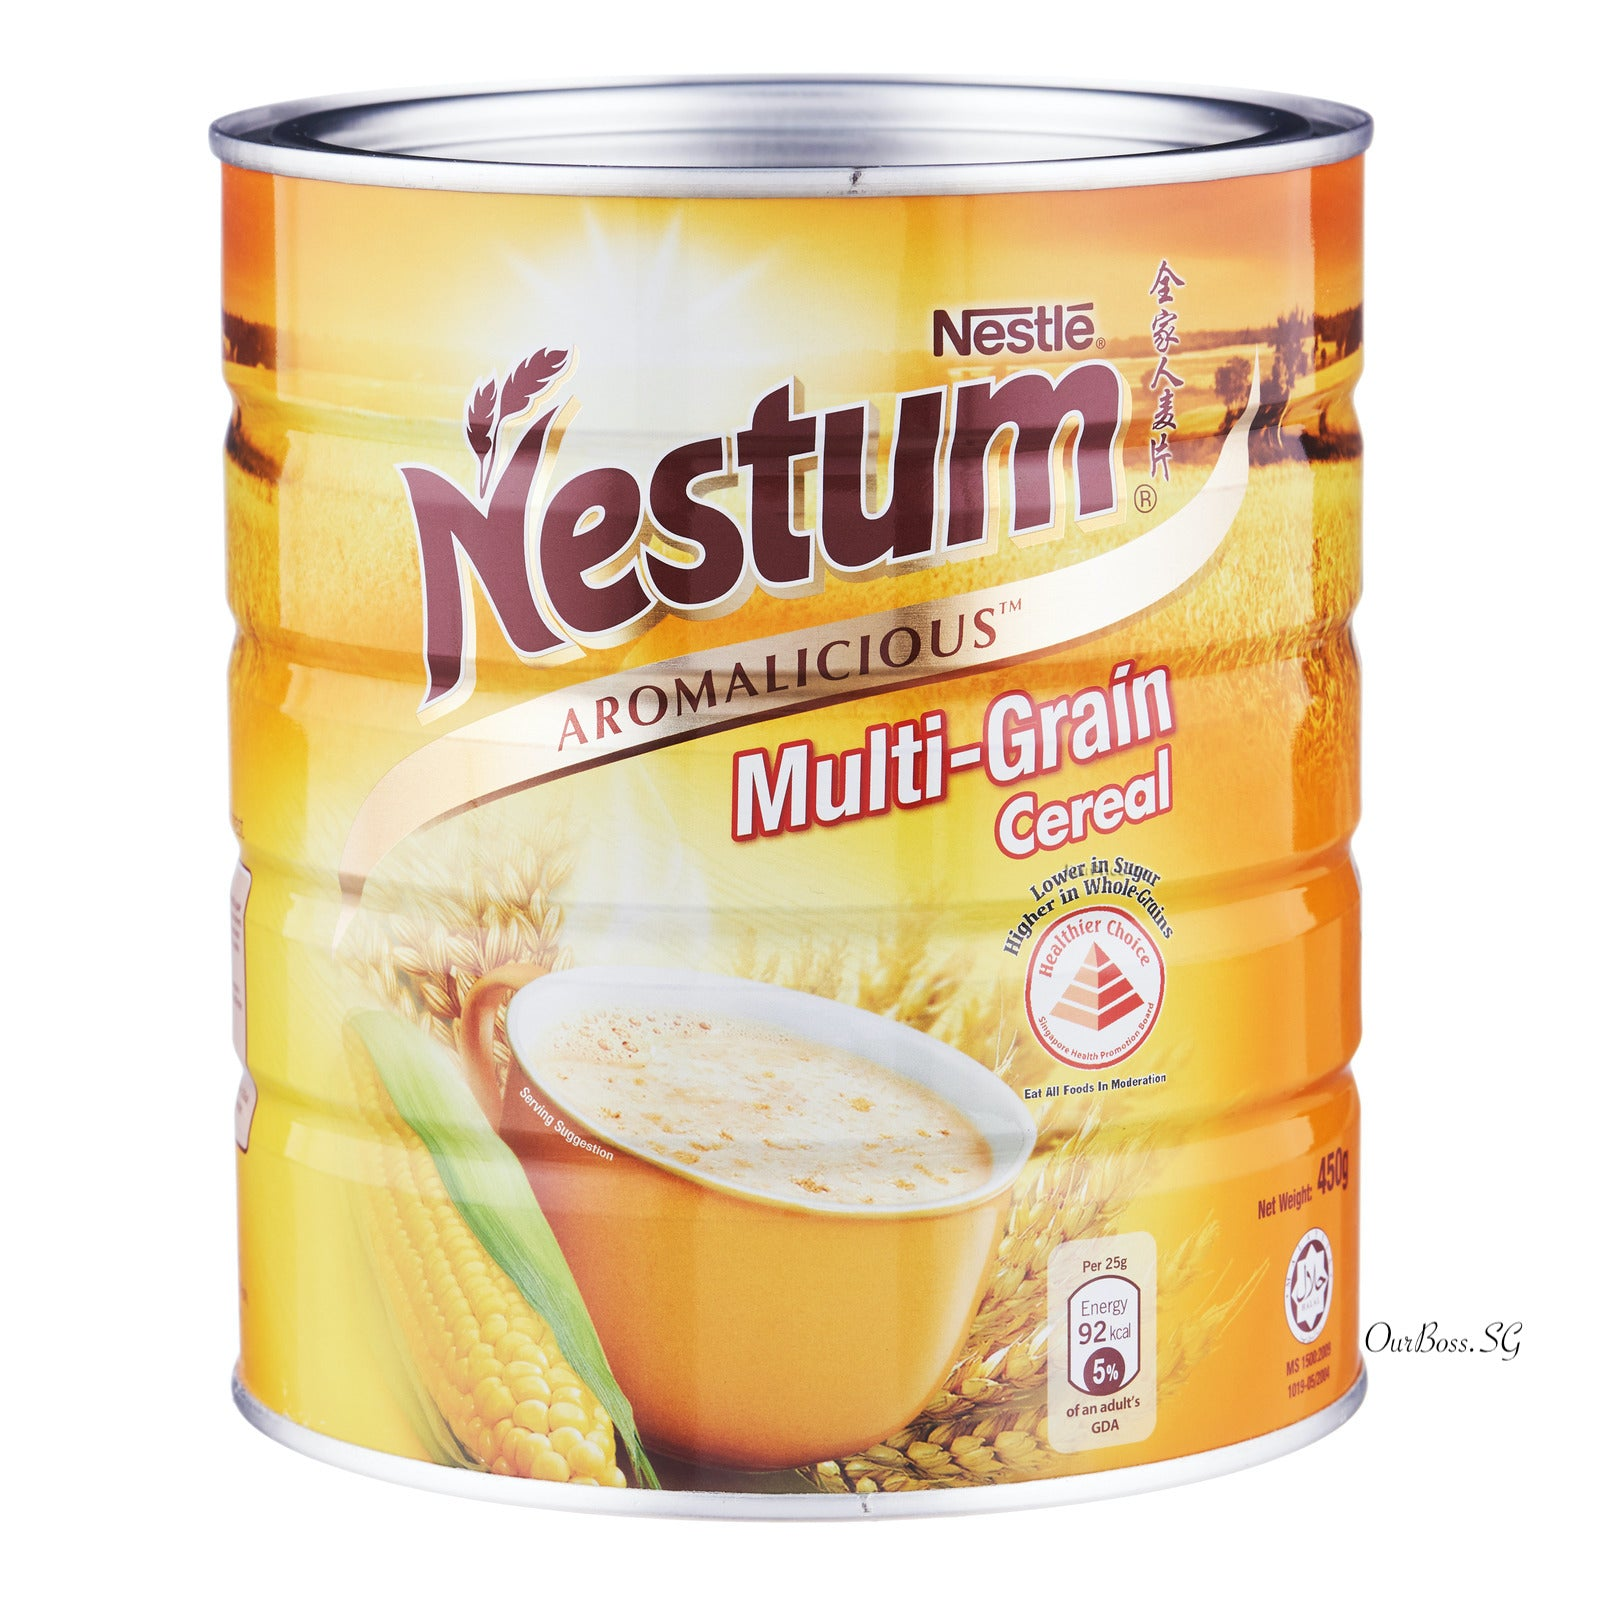 Nestum Multi-Grain Cereal